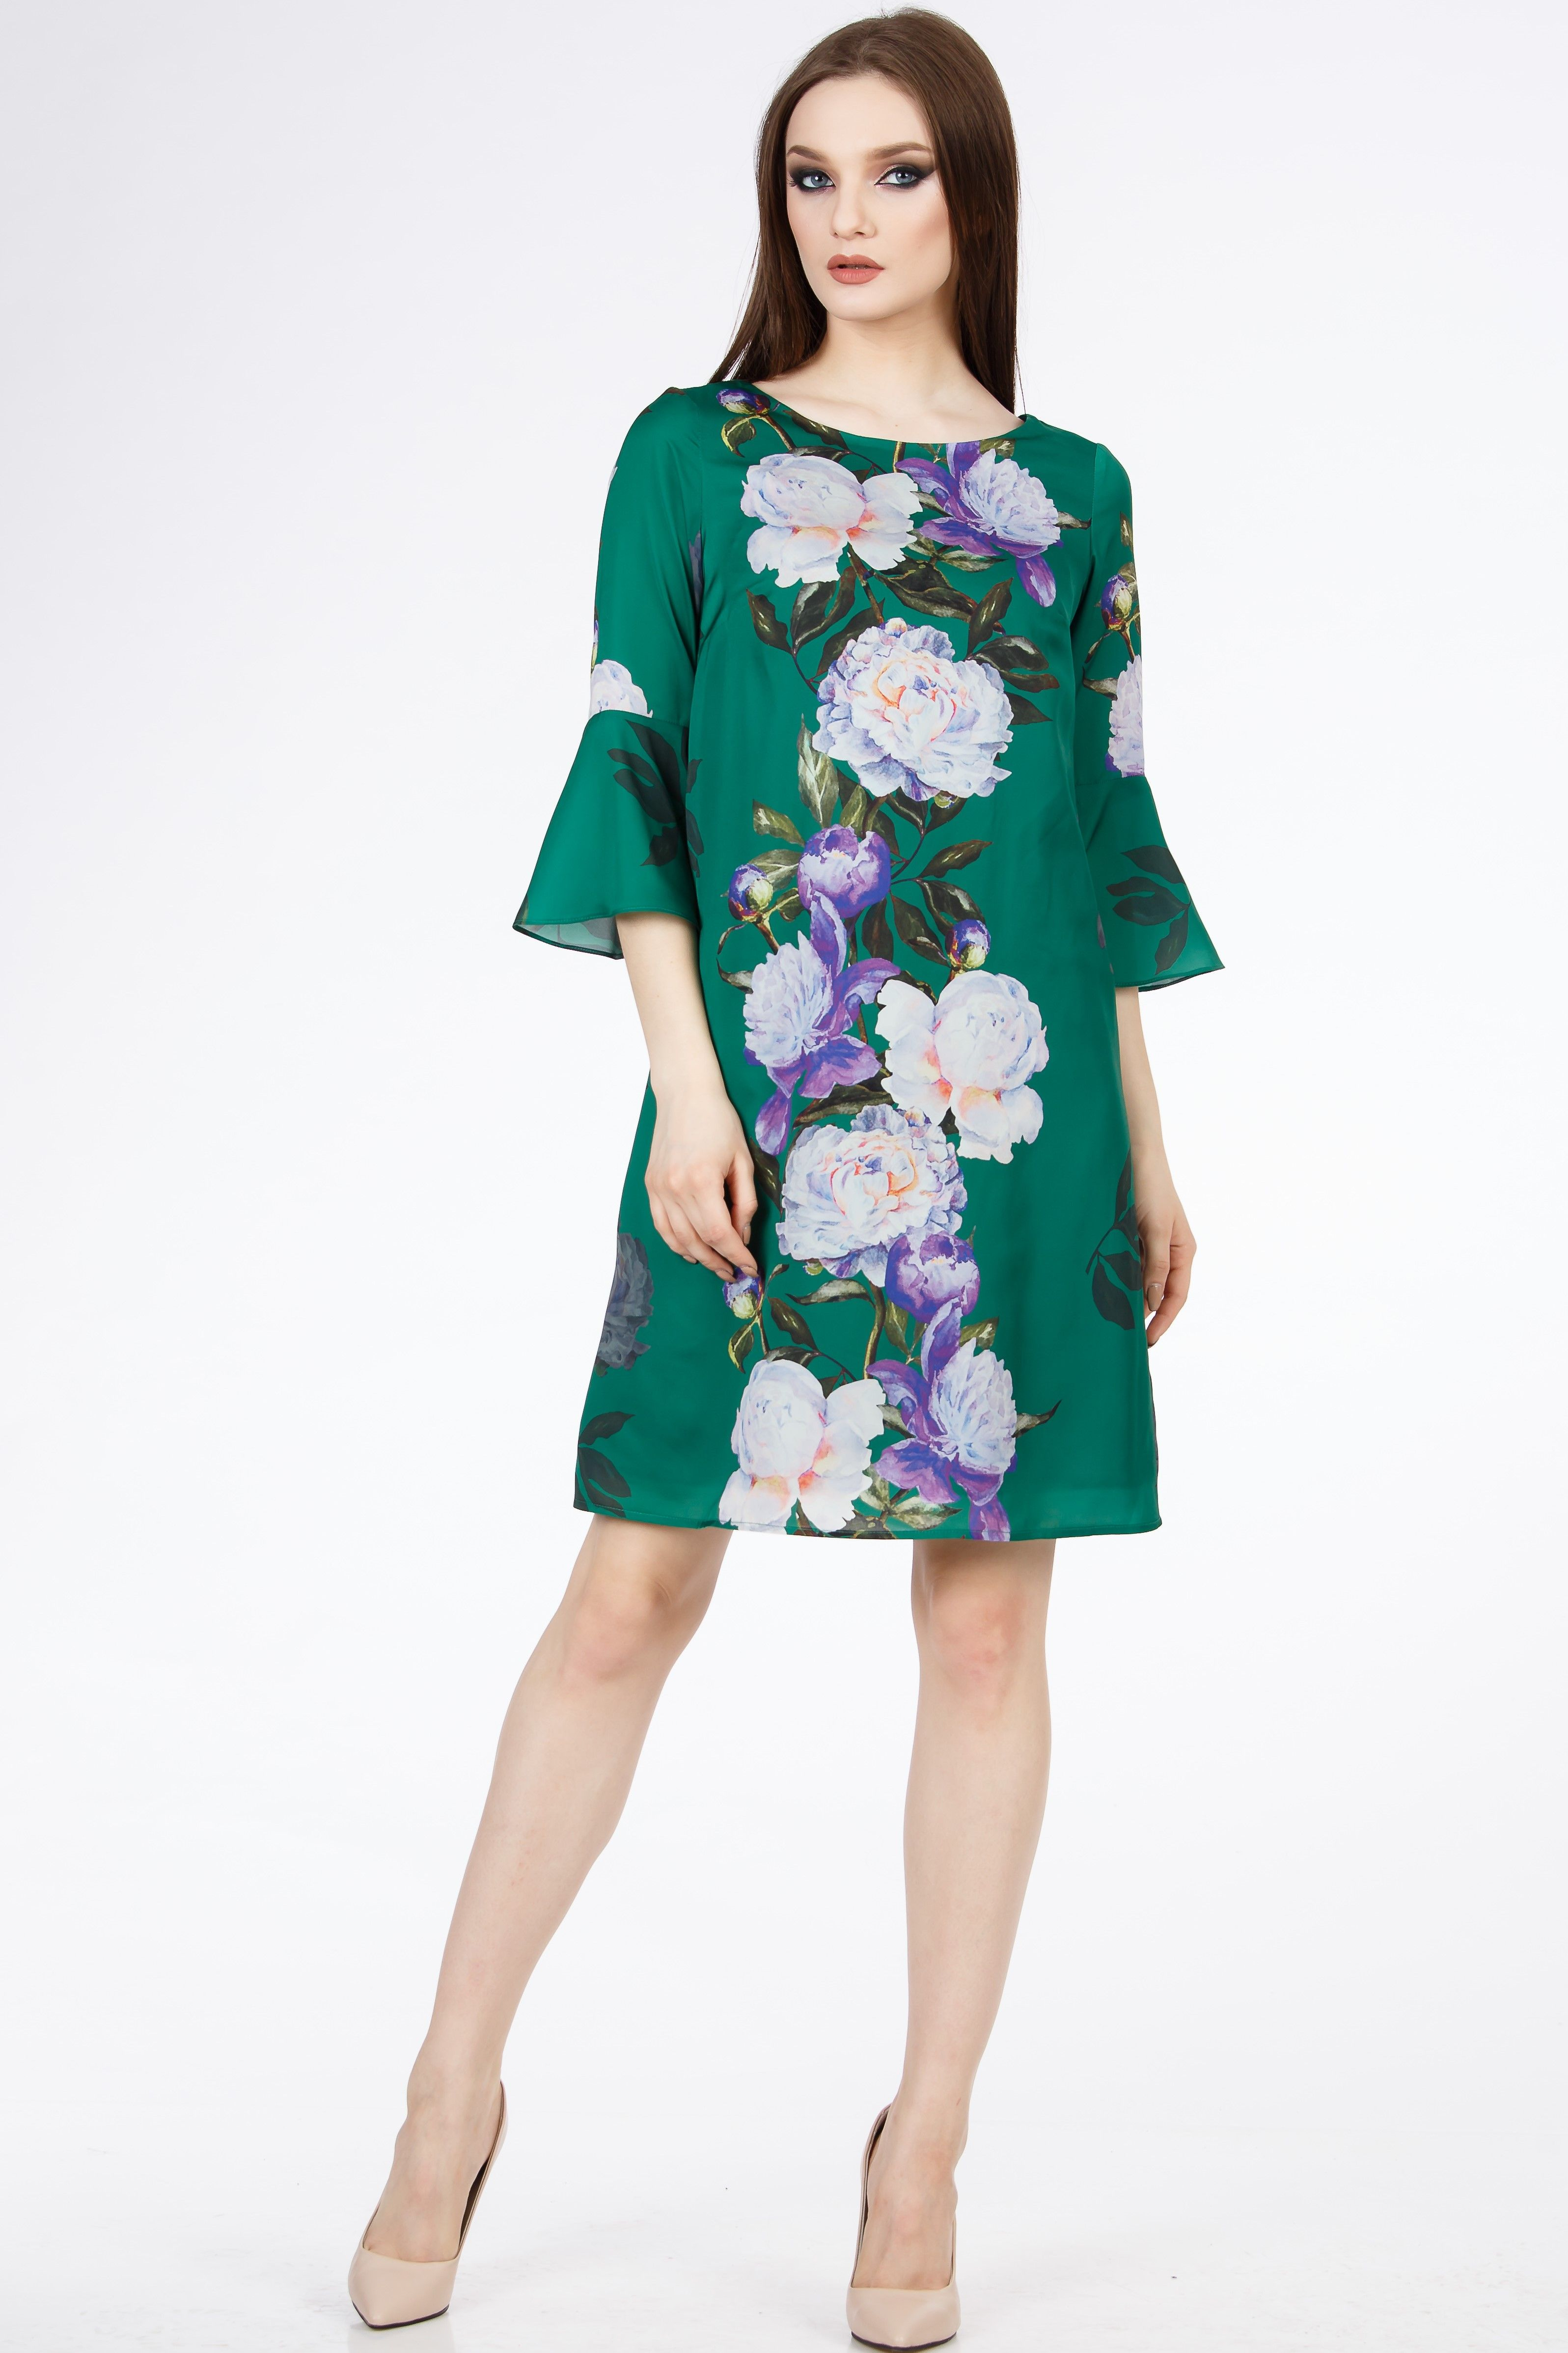 Outfit Ideea To Wear This Summer Summer Dress Floral Dress Green